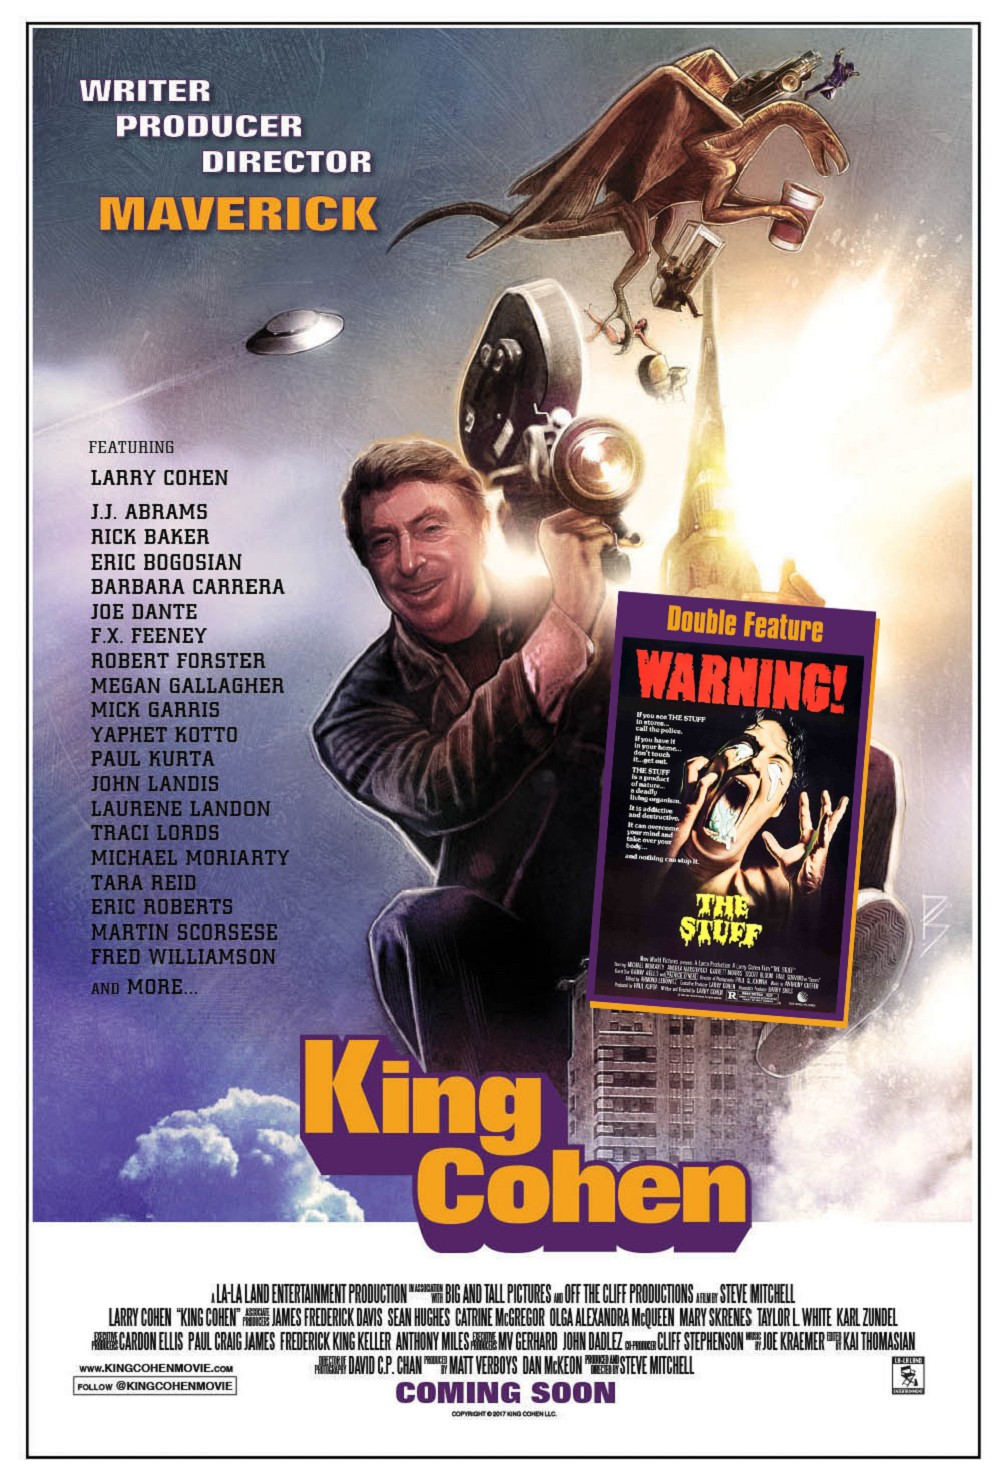 THE STUFF + KING COHEN: THE WILD WORLD OF FILMMAKER LARRY COHEN